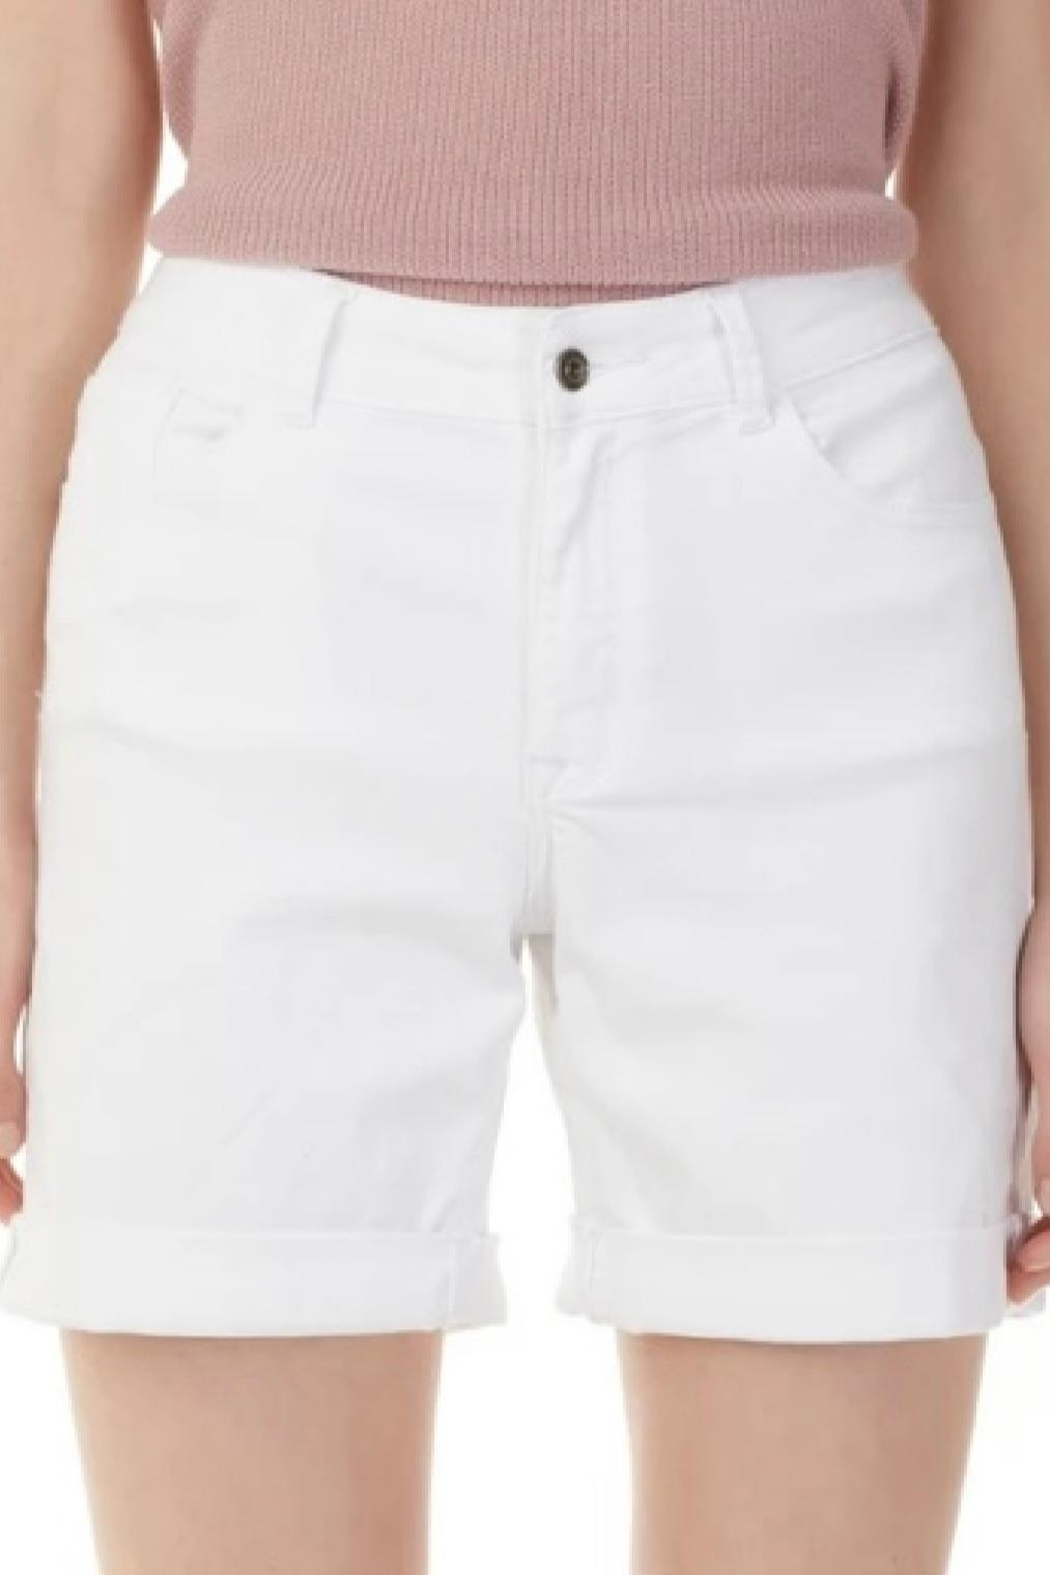 Charlie B. White Cuffed Shorts - Main Image